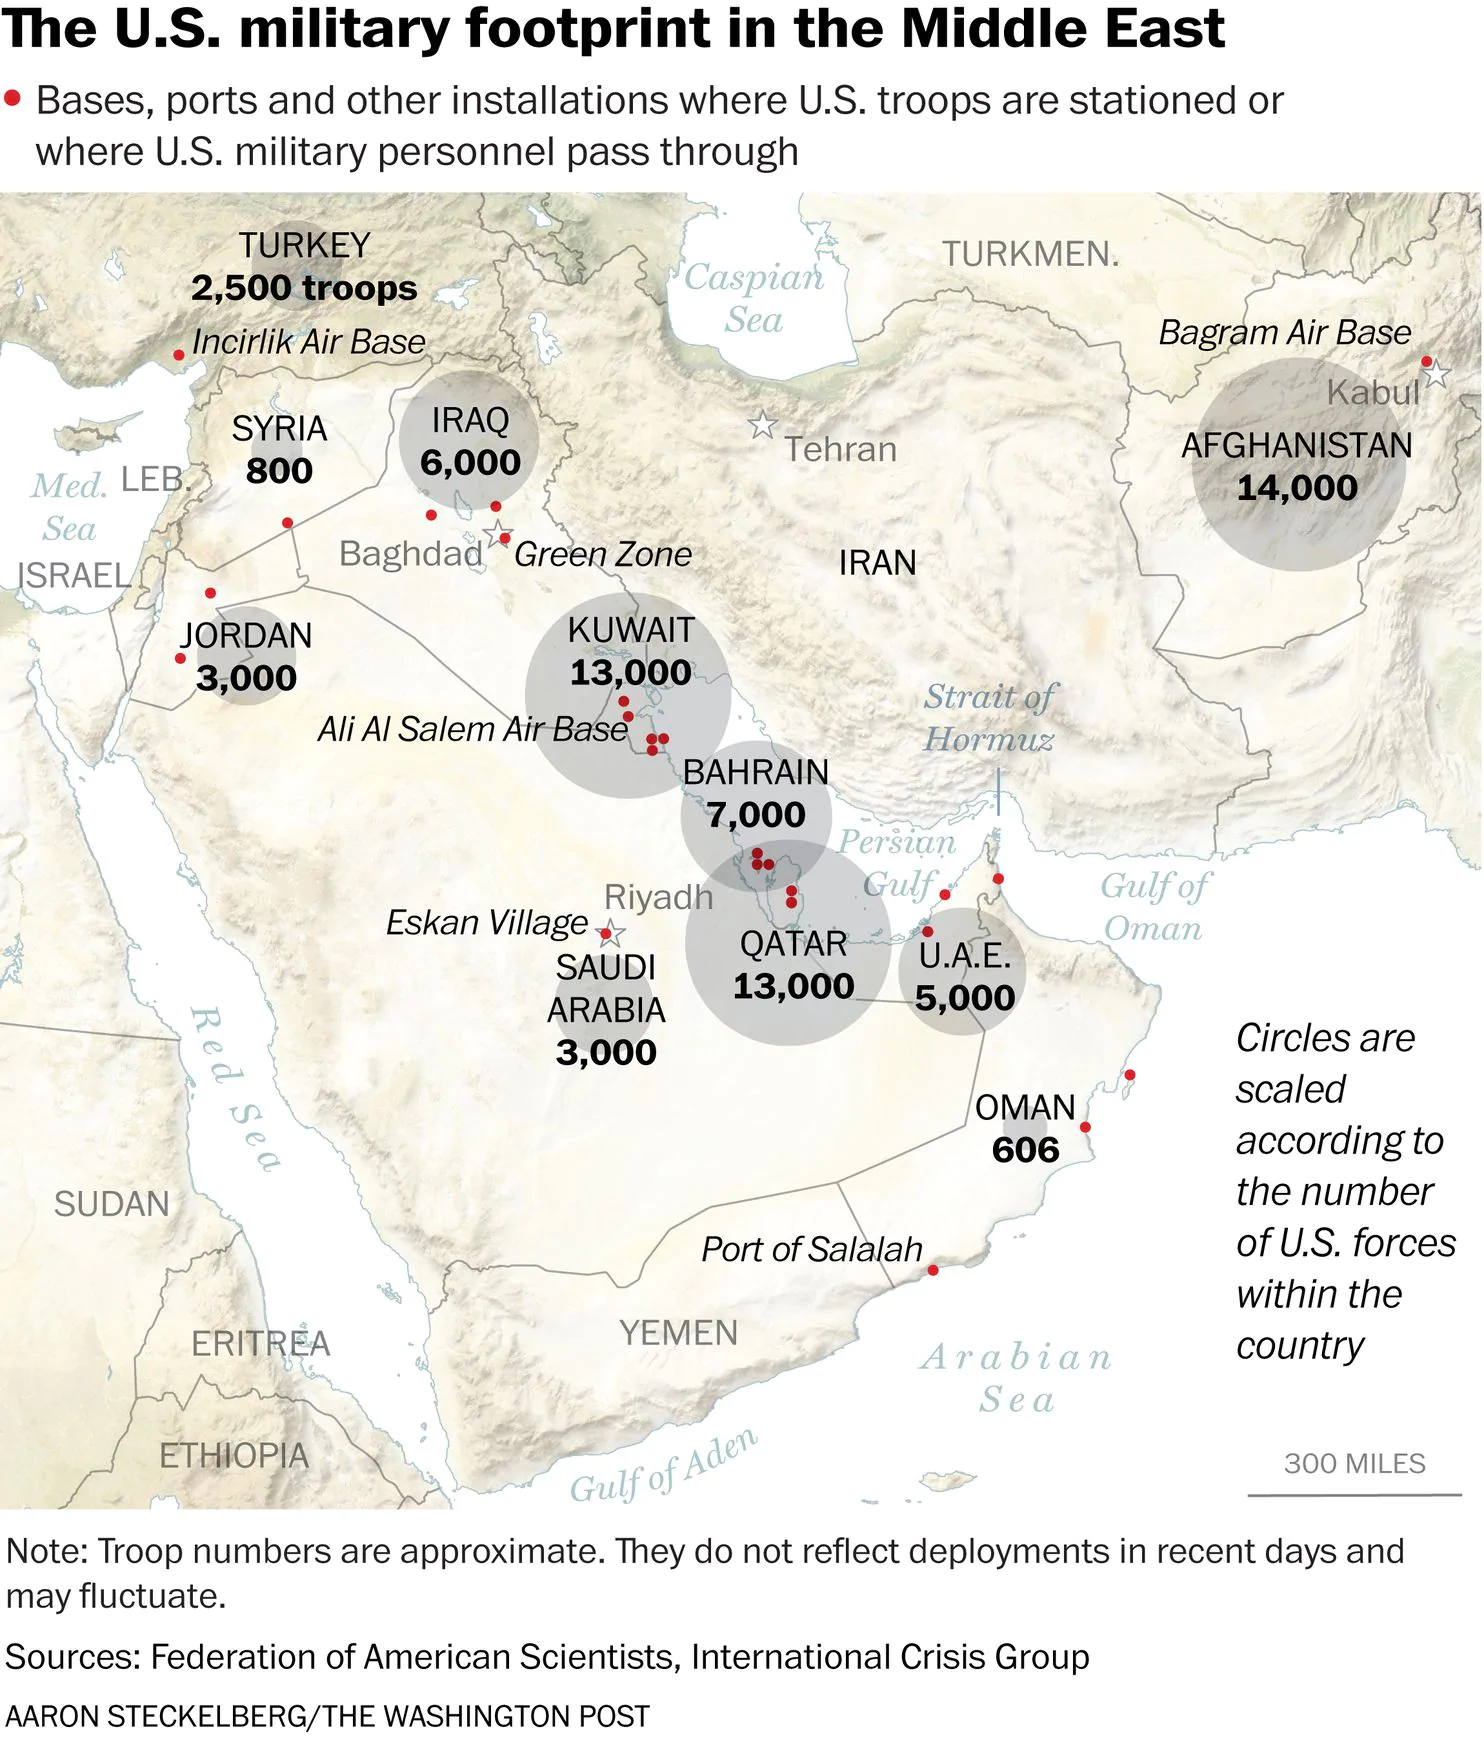 How Many Forces Does United States Have In Middle East To Strike Iran?